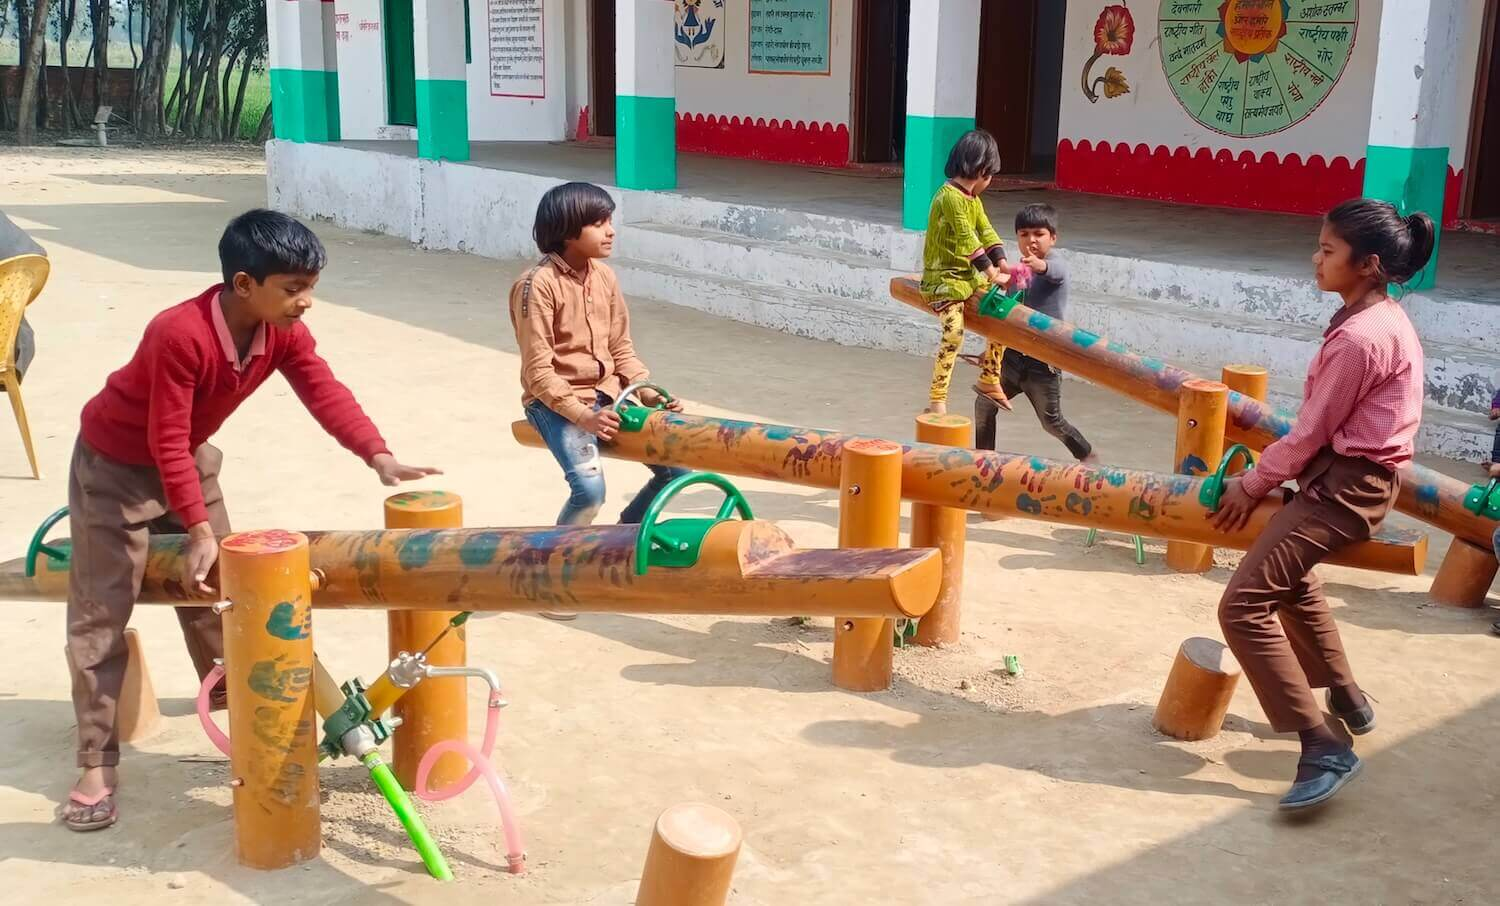 Sheffield Hallam researchers install first of its kind energy harnessing playground in India